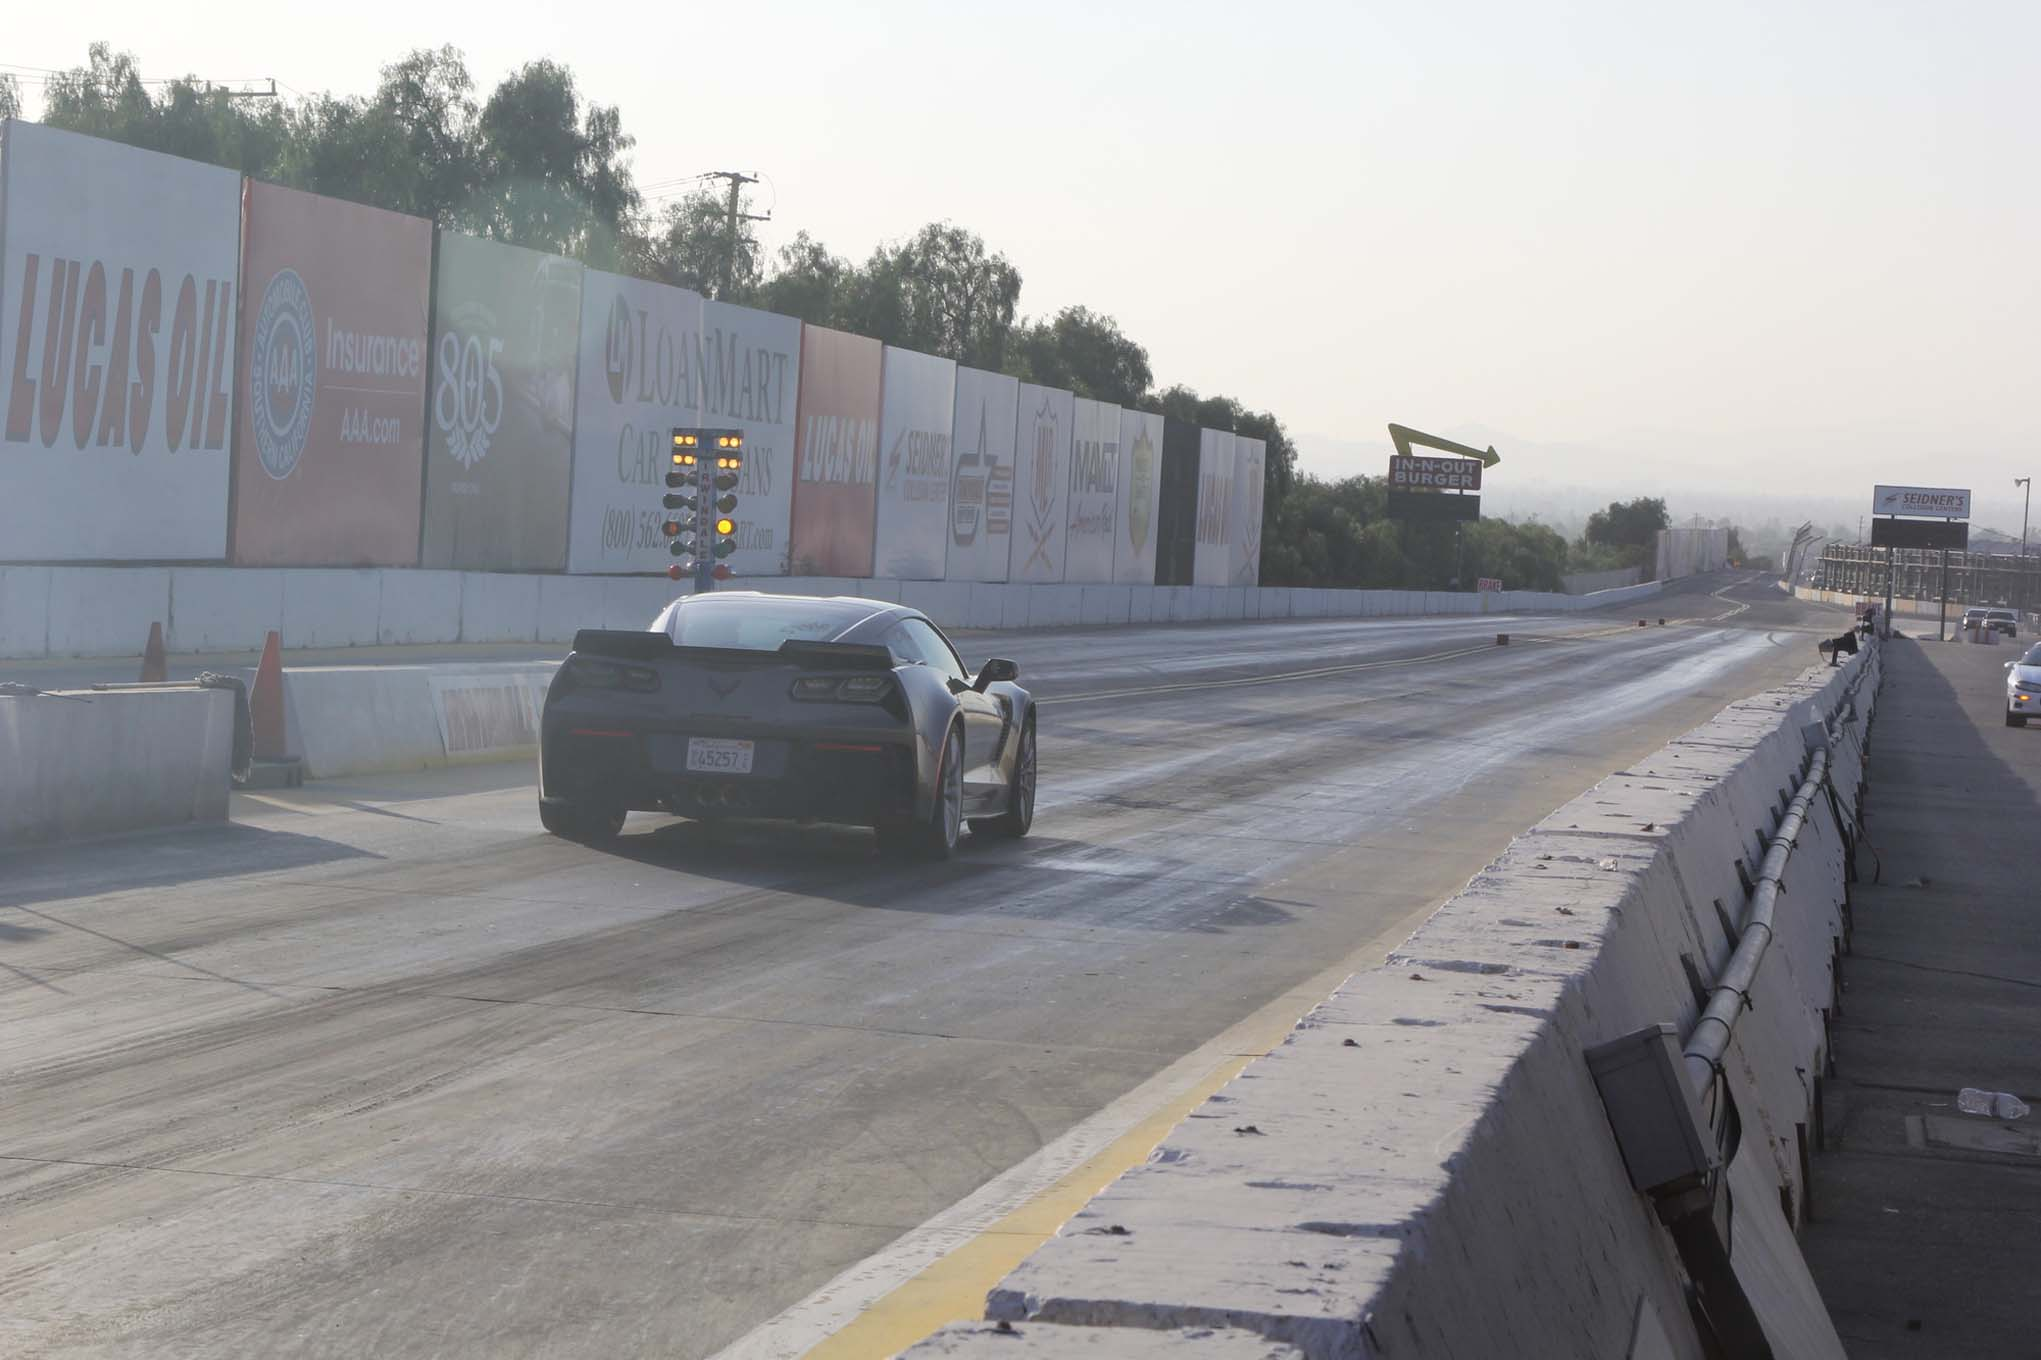 "We had high hopes for the Z06 on the dragstrip, as Chevrolet advertises it as capable of low 11-second quarter-miles. We only had access to our local Thursday grudge night at the Irwindale Speedway eighth-mile track, but we expected to see low- to mid-7s. After the first burnout, the car started pulling power, giving us a dead spot just after launch and resulting in a disappointing 8.59 at 93 mph. A second pass had the same result and lit the check-engine light. A scanner showed us code P0503, ""Vehicle Speed Sensor A Intermittent, Erratic, or High."" Convinced that it wasn't in danger of blowing up, but also that it wasn't going to run the number that night, we limped it home. Note that reduced power in a Z06 Corvette is still plenty fast enough to get you in trouble. The light was off the next day and everything was back to normal. We checked in with Chevrolet and Corvette Chief Engineer Tadge Juechter explained that we had probably triggered the code during the burnout. ""It typically occurs when the driver breaks traction in Second or Third gear, and then quickly pushes in the clutch."" The ECM reads that rapid change in tire speed as a sensor fail and goes into a safety mode. After a few on/off cycles, the car realizes it made a mistake and goes back to normal. This is what happened to us, although it took more than a few cycles before the light turned off and we got full power back. Juechter says there is an updated calibration that should prevent the issue for customers. If we had driven the car around a bit and turned it on and off a few more times, we might have been able to keep racing that night. Oh well, our mistake is your knowledge gain."